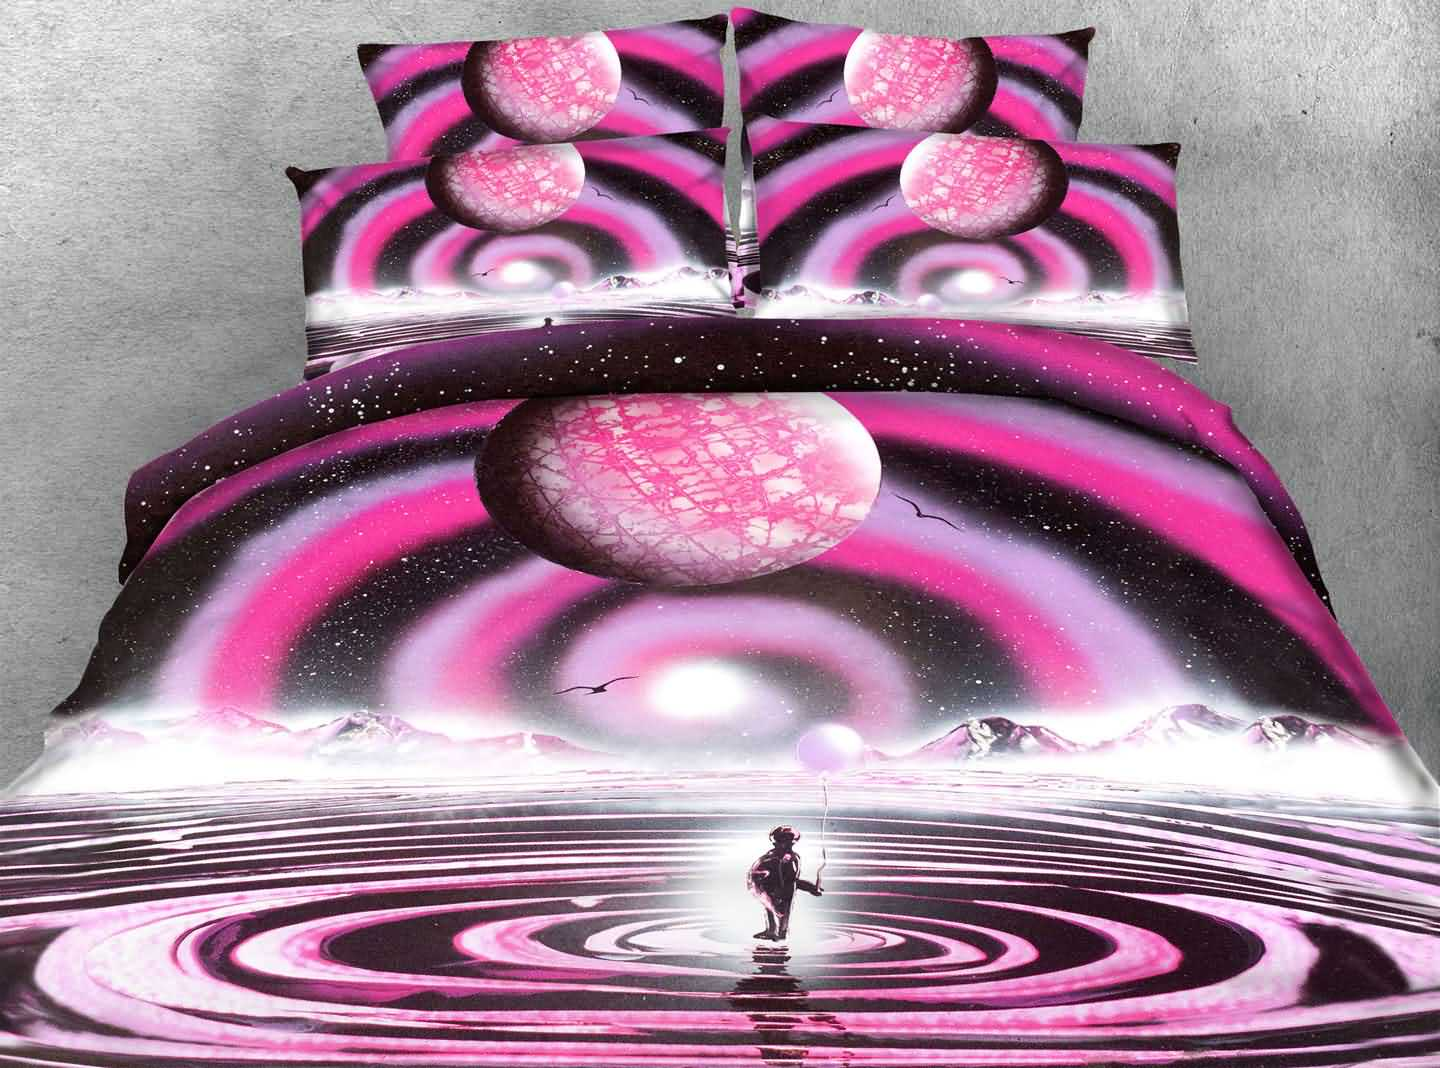 3D Visual Traveler and Planet Printed 4-Piece Bedding Sets/Duvet Covers